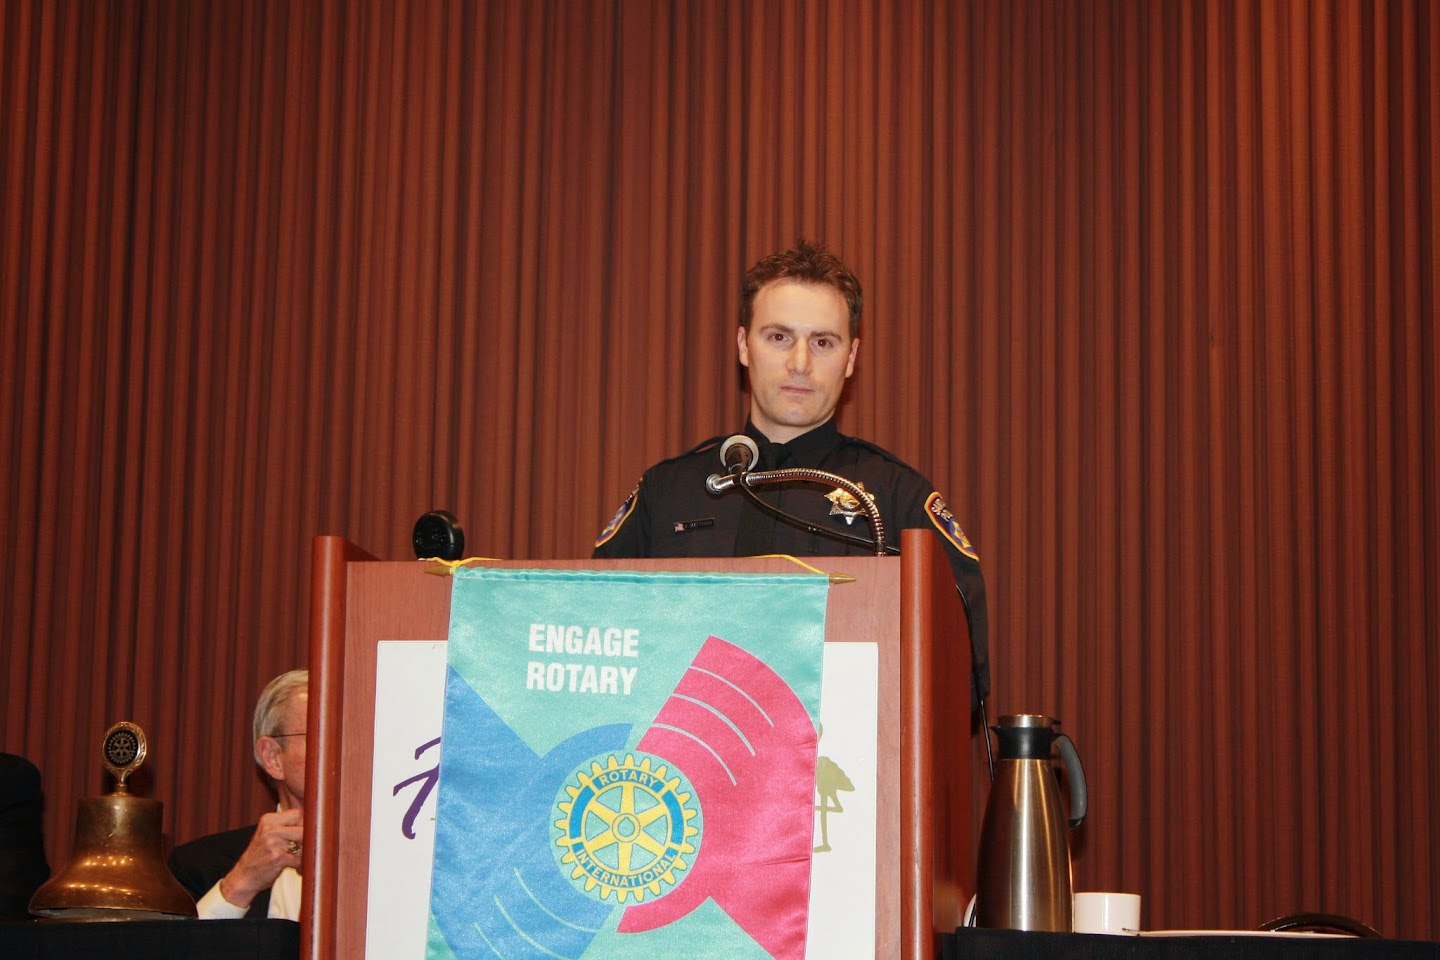 Public Safety Awards 2014 - SRPD%2Bhonoree%2BOfficer%2BMatthies.JPG